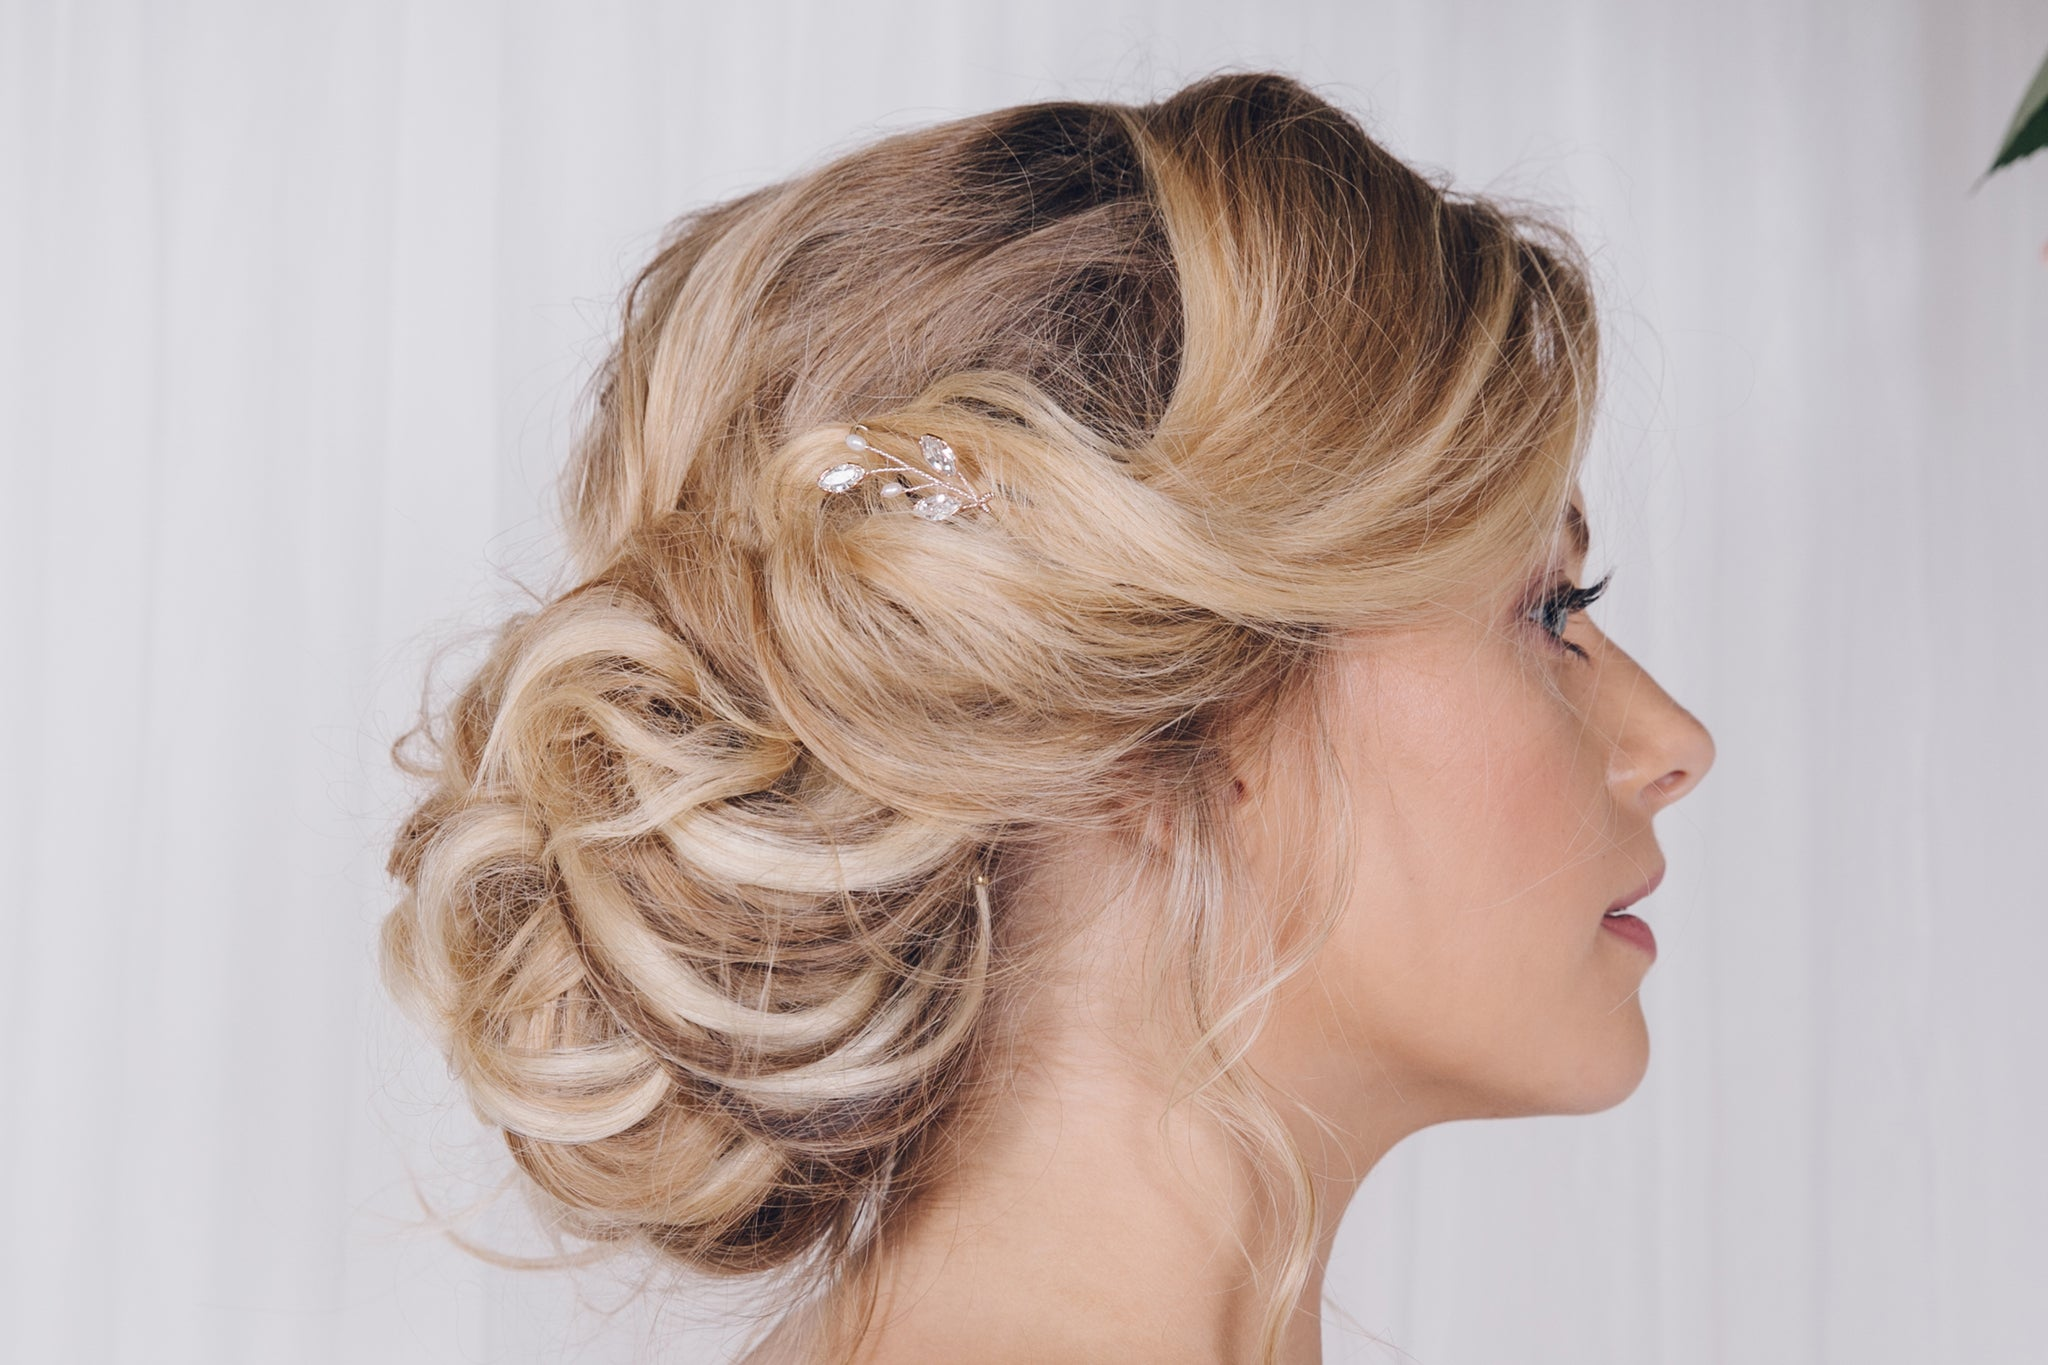 One silver Swarovski crystal and pearl leaf hairpin in the side of an updo wedding hairstyle